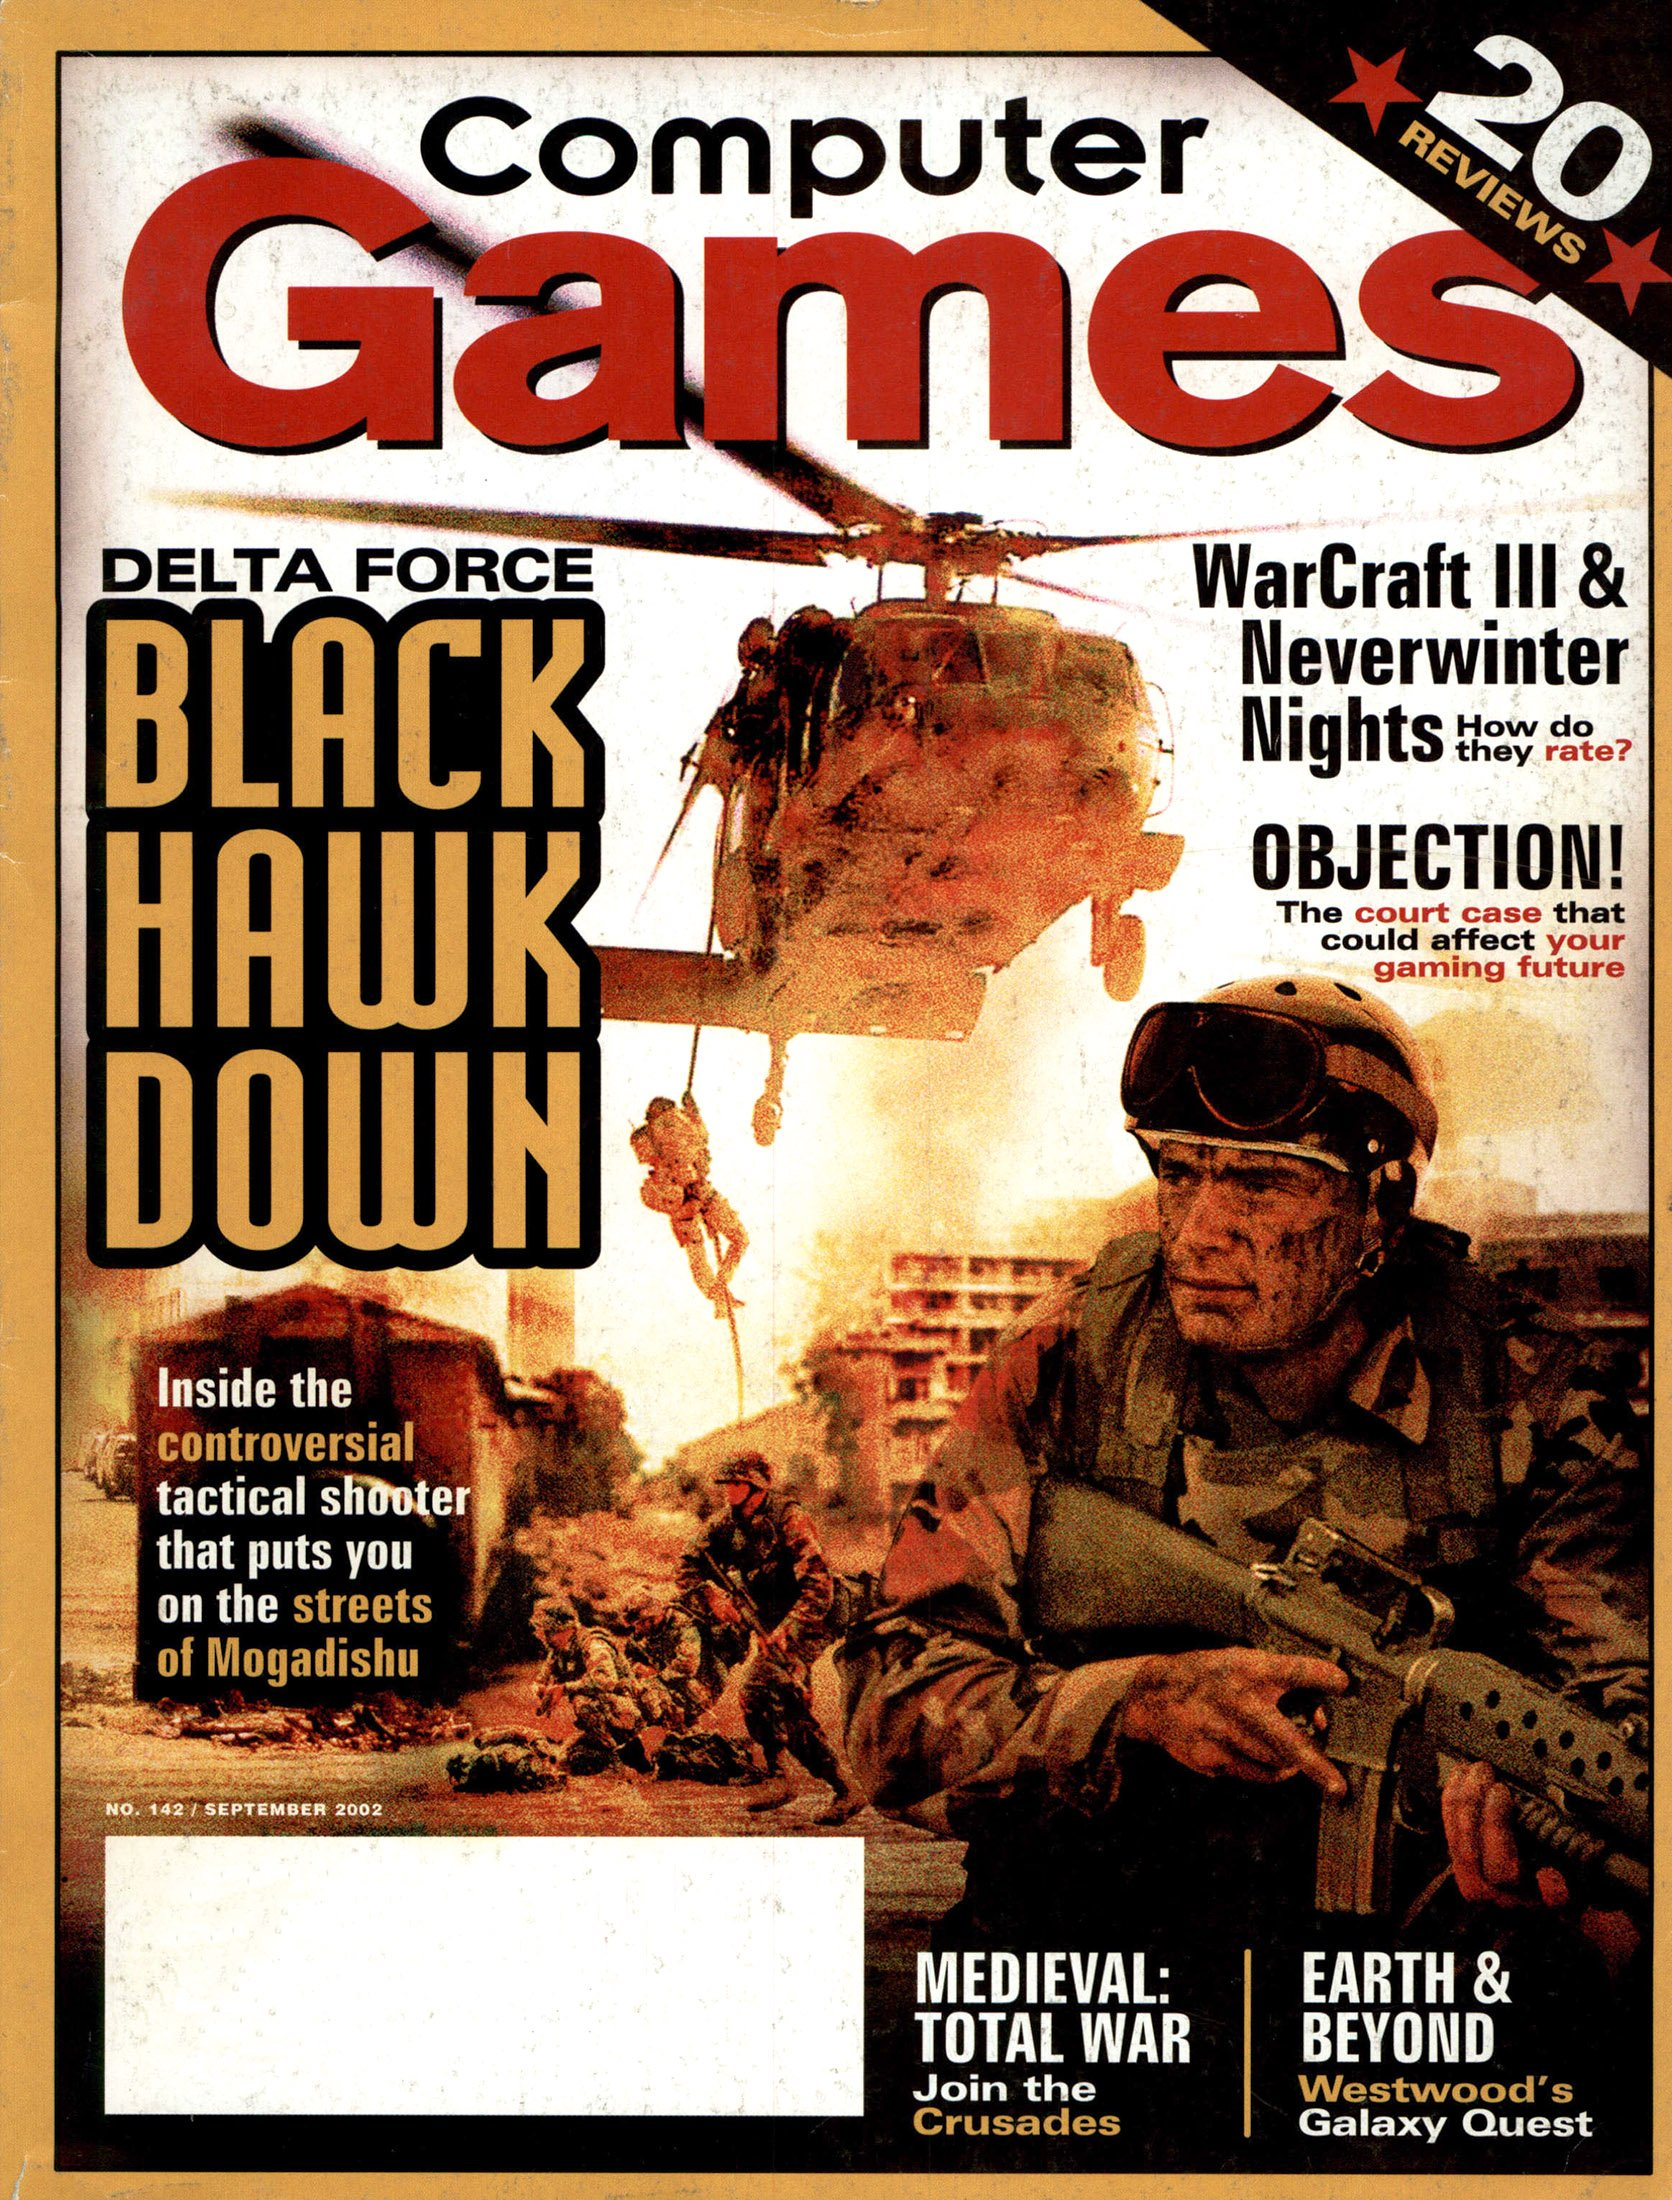 Computer Games Issue 142 (September 2002)